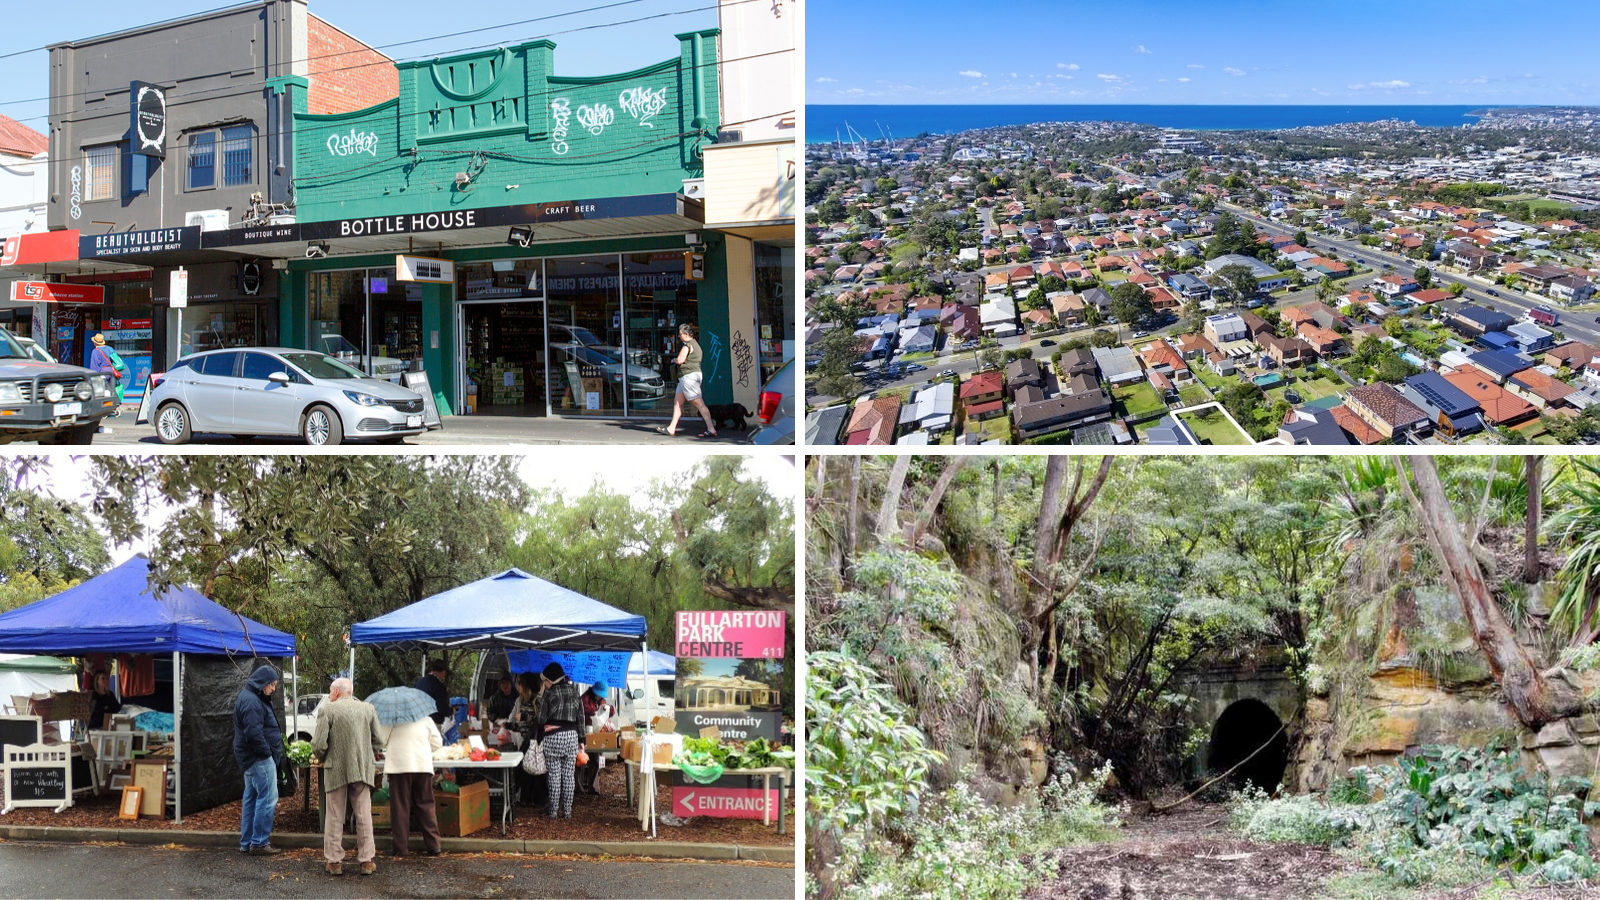 House prices will rise more than $200,000 in these property hotspots